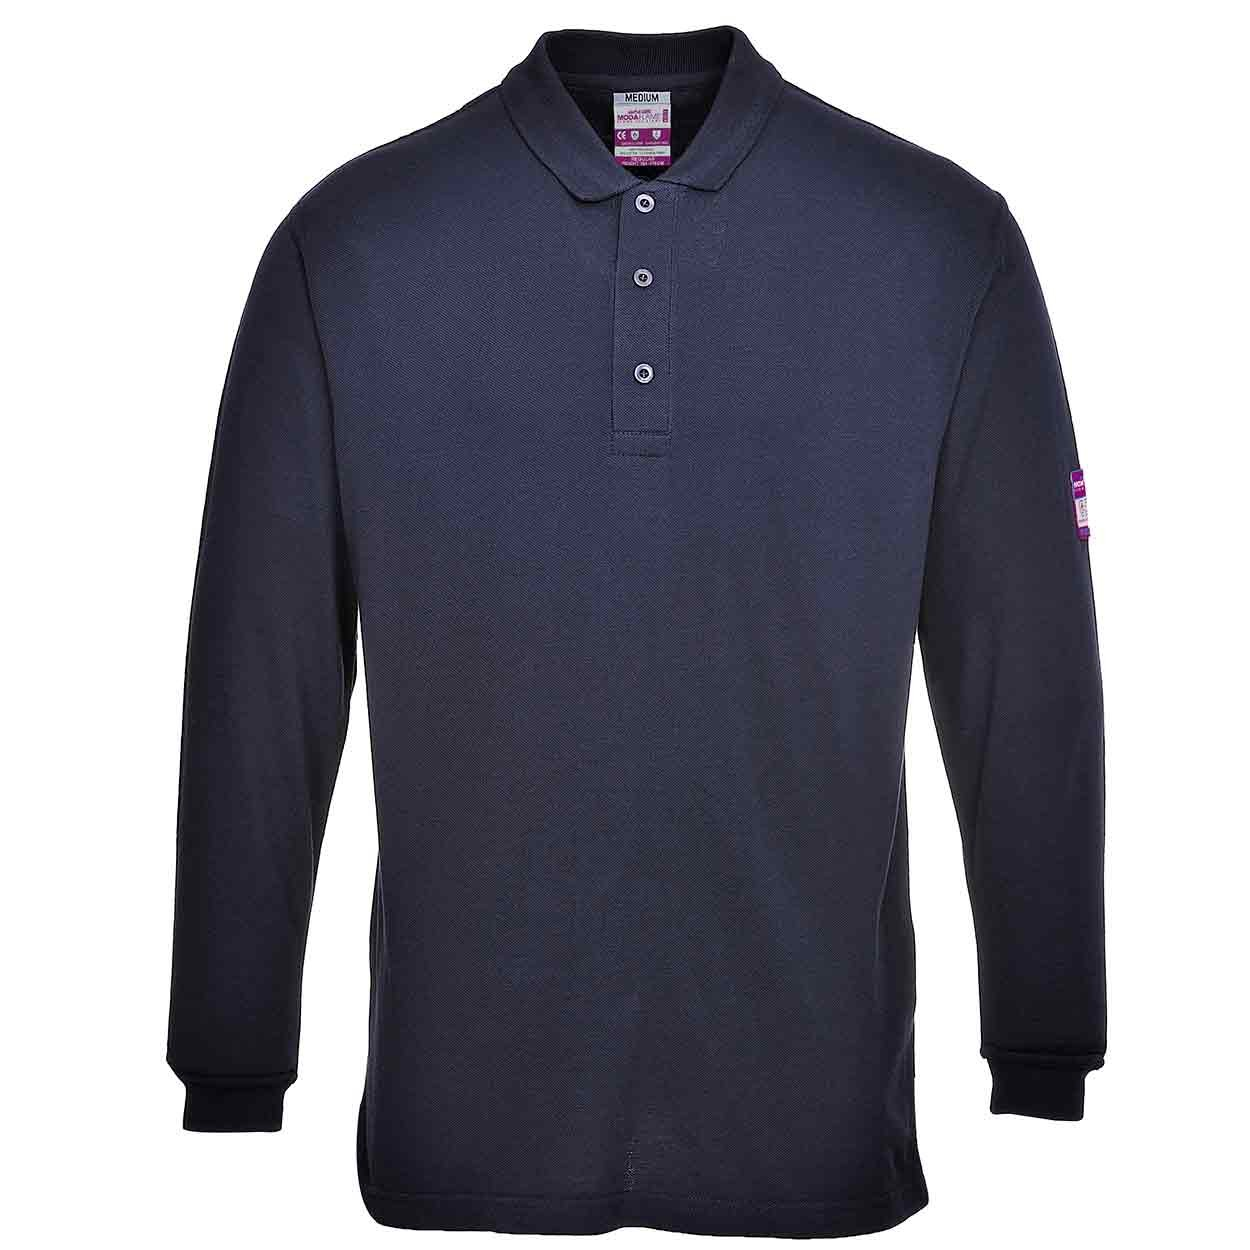 Flame Resistant Anti-Static Long Sleeve Polo Shirt Portwest